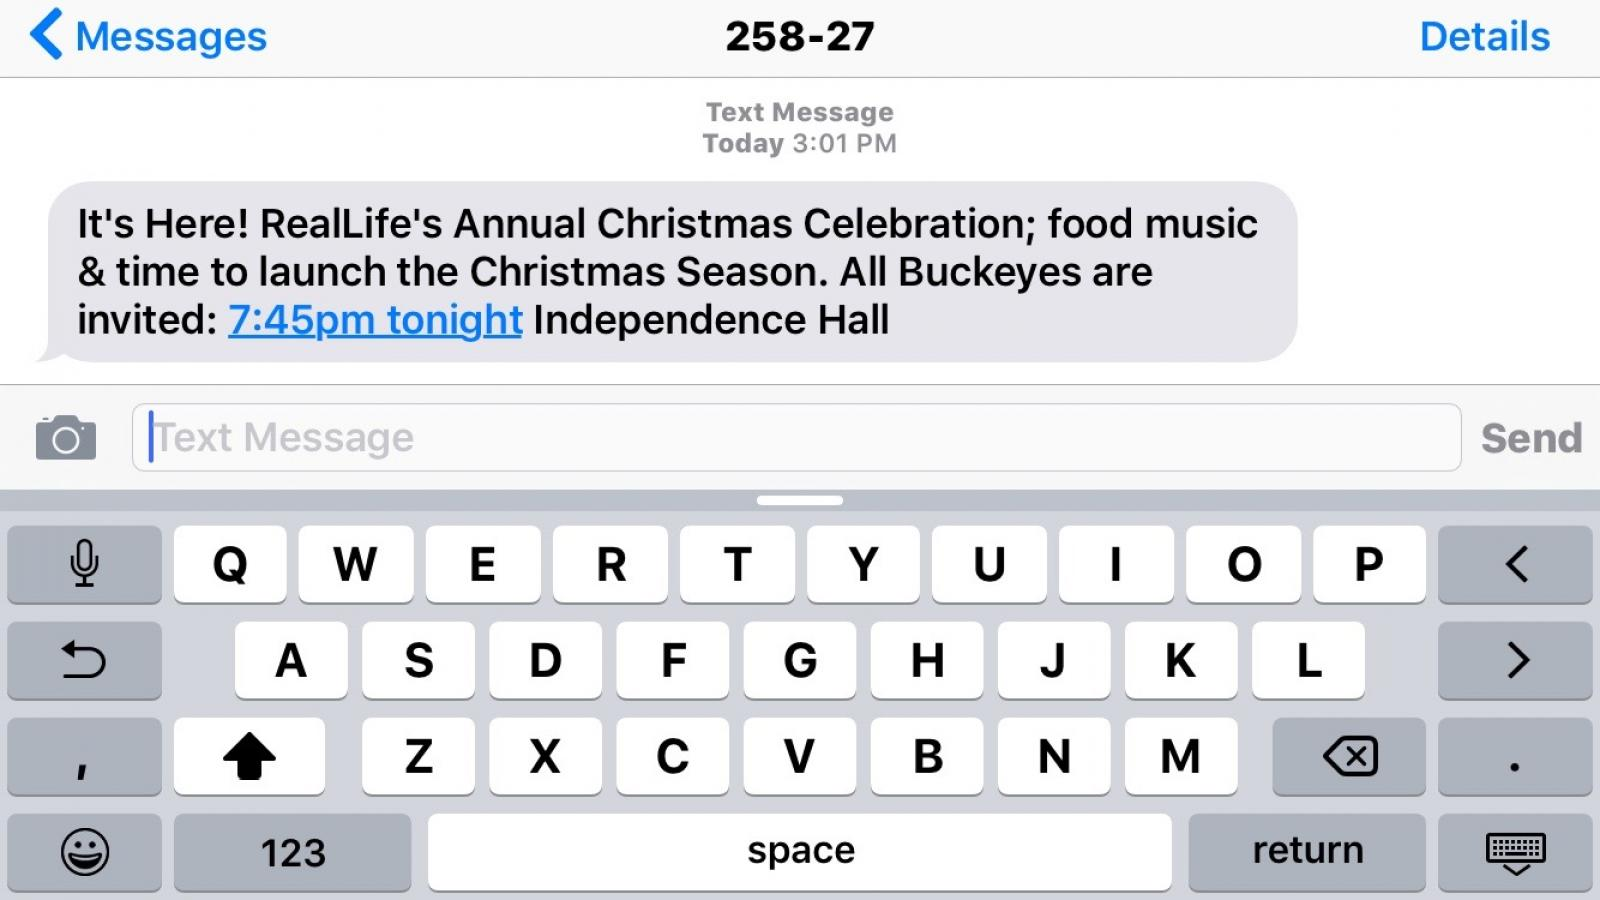 Ohio State University Campus Religion: RealLife text about Christmas Celebration